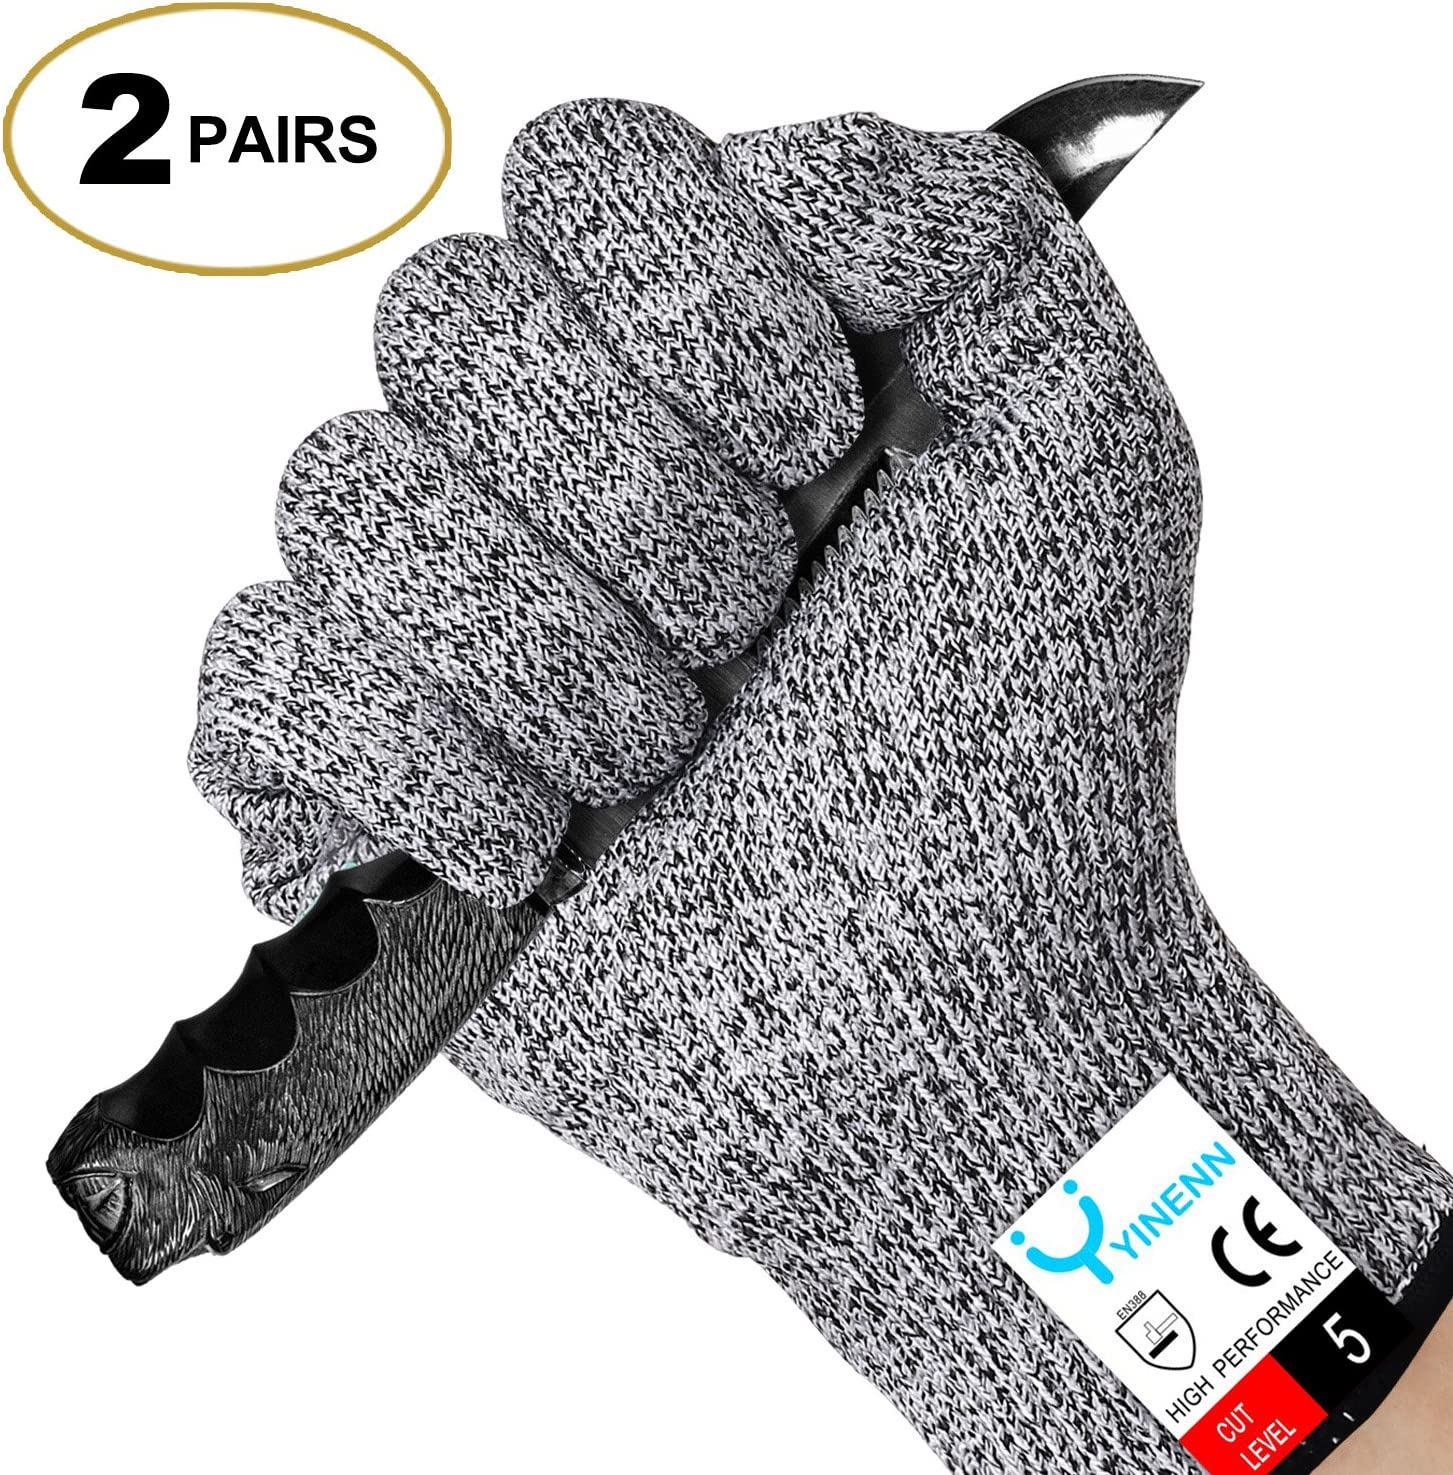 YINENN 2 Pairs (4 Gloves) Cut Resistant Gloves Food Grade Level 5 Hand Protection,Kitchen Cut Gloves for Oyster Shucking,Fish Fillet Processing,Mandolin Slicing,Meat Cutting,Wood Carving-(Medium)